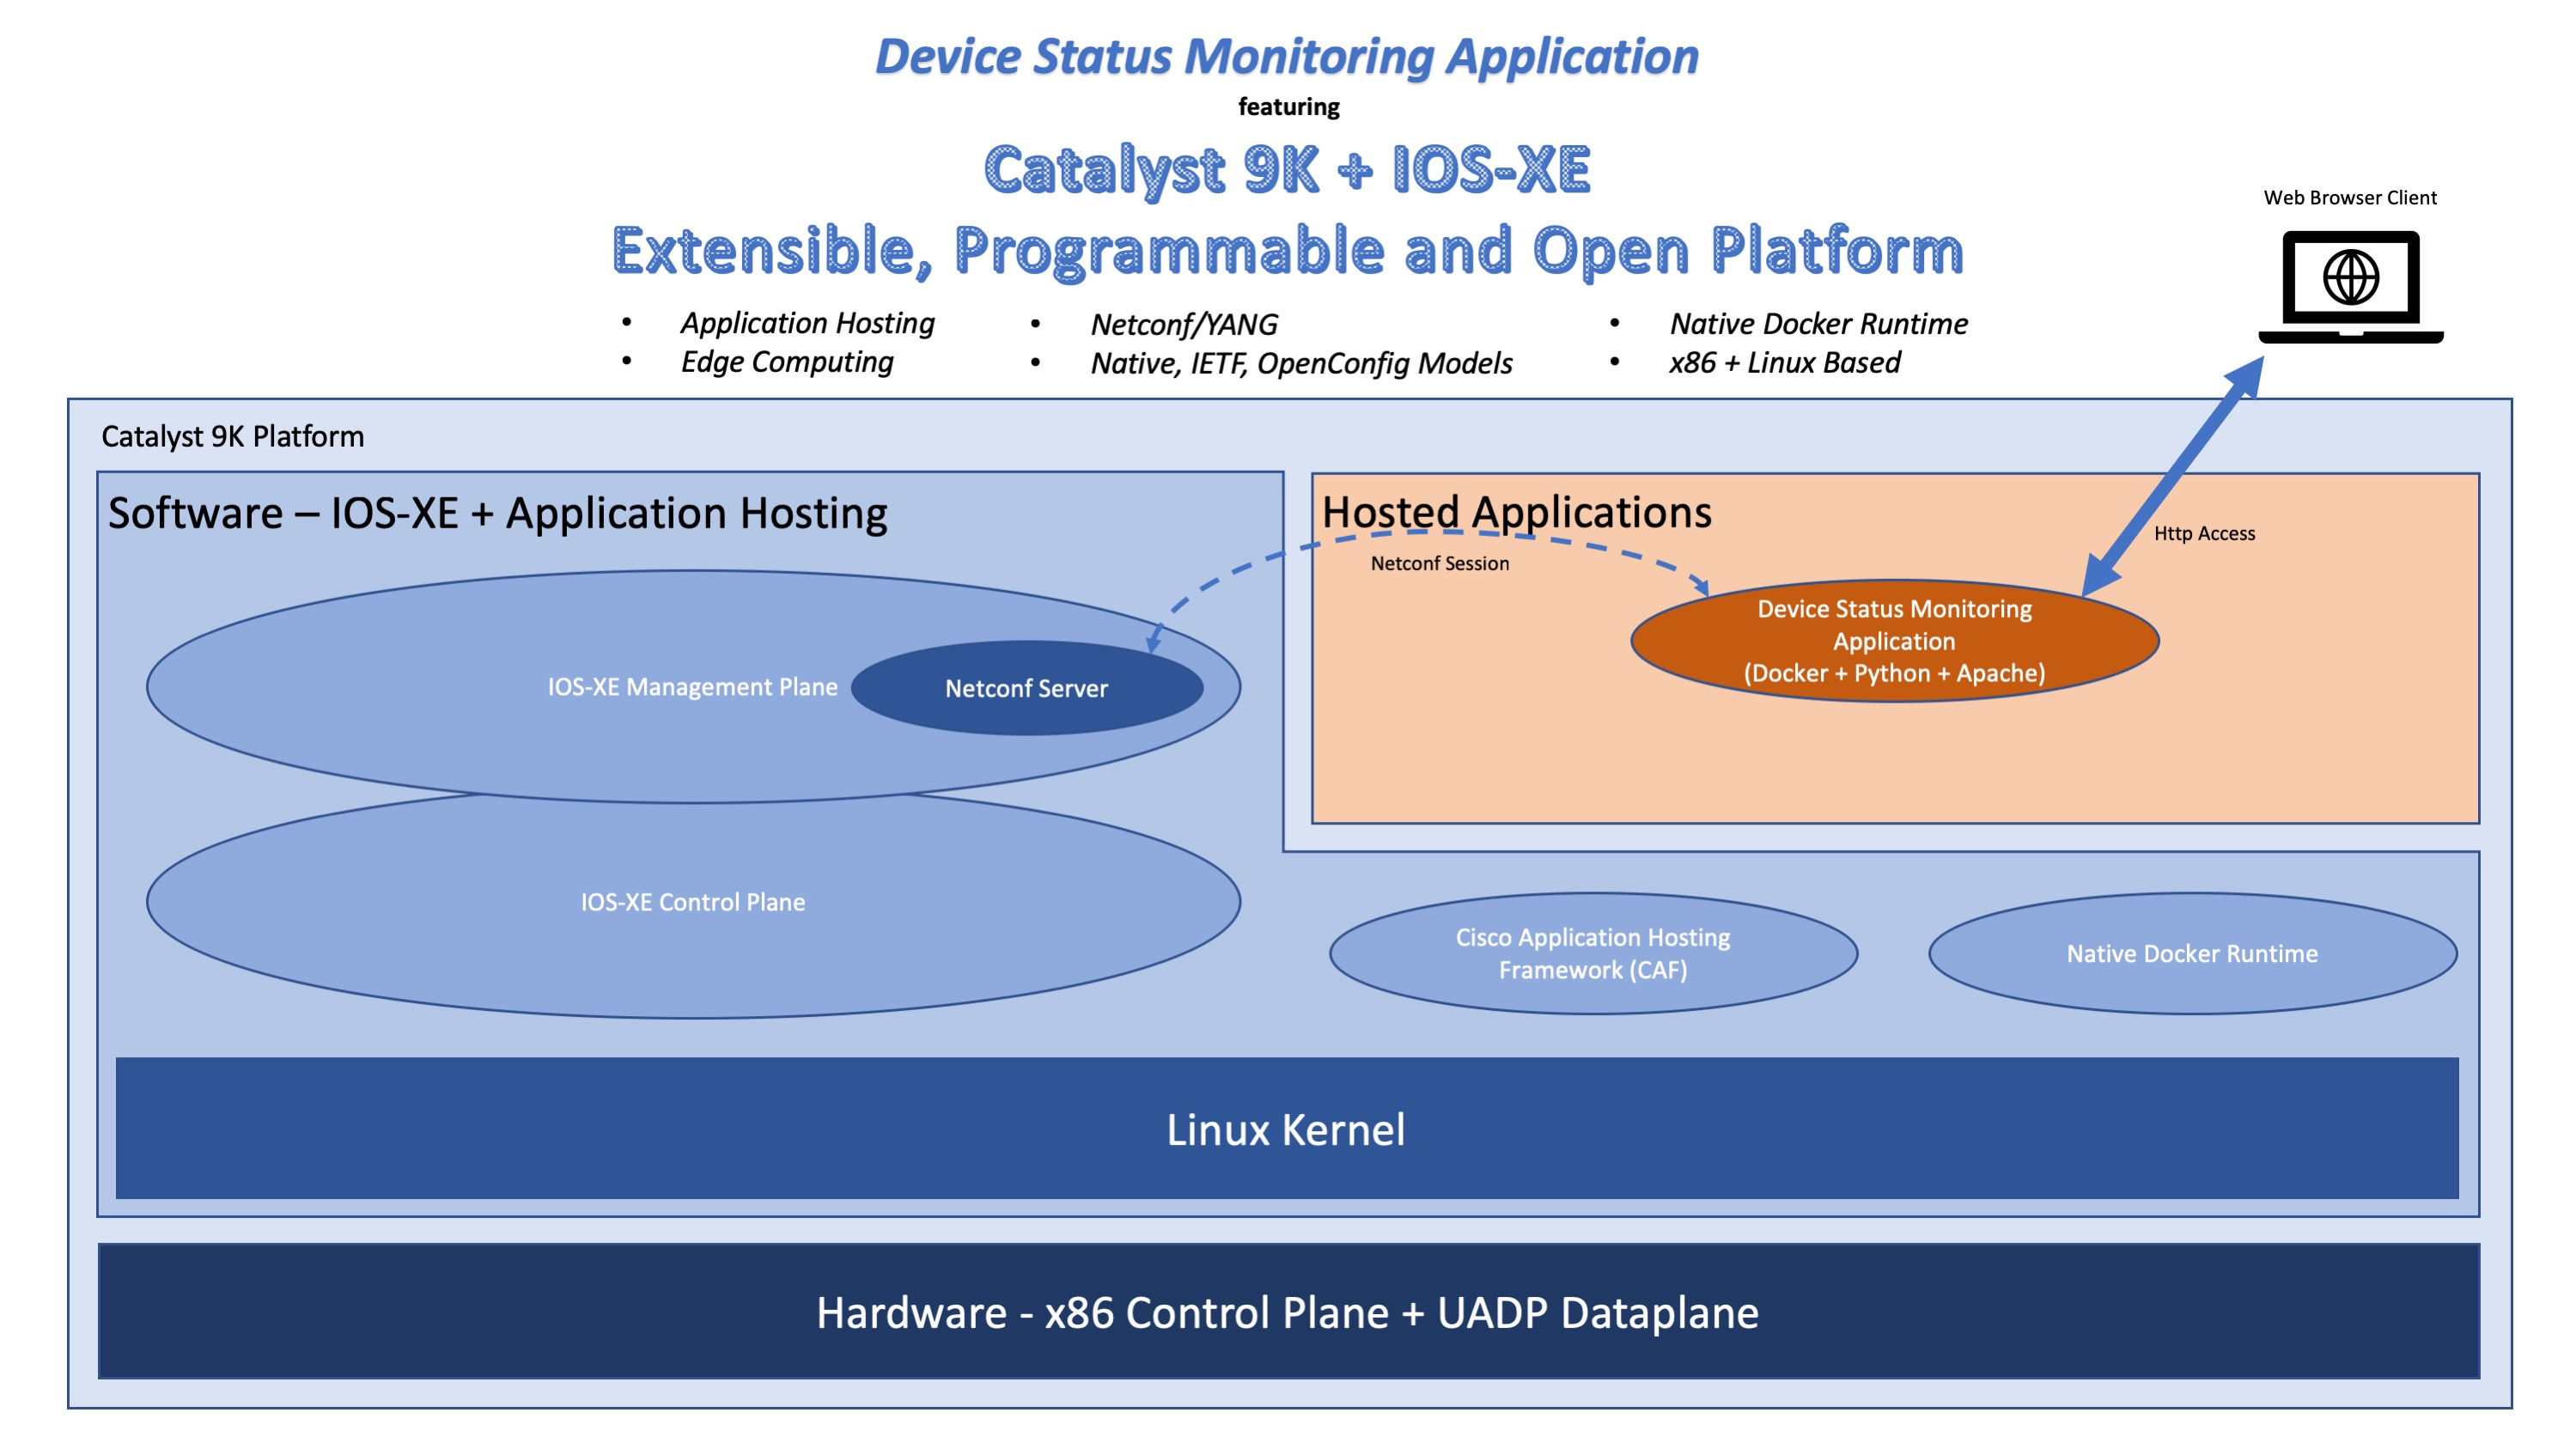 CiscoDevNet/cat9k-device-monitoring-app: Catalyst 9K Device Status